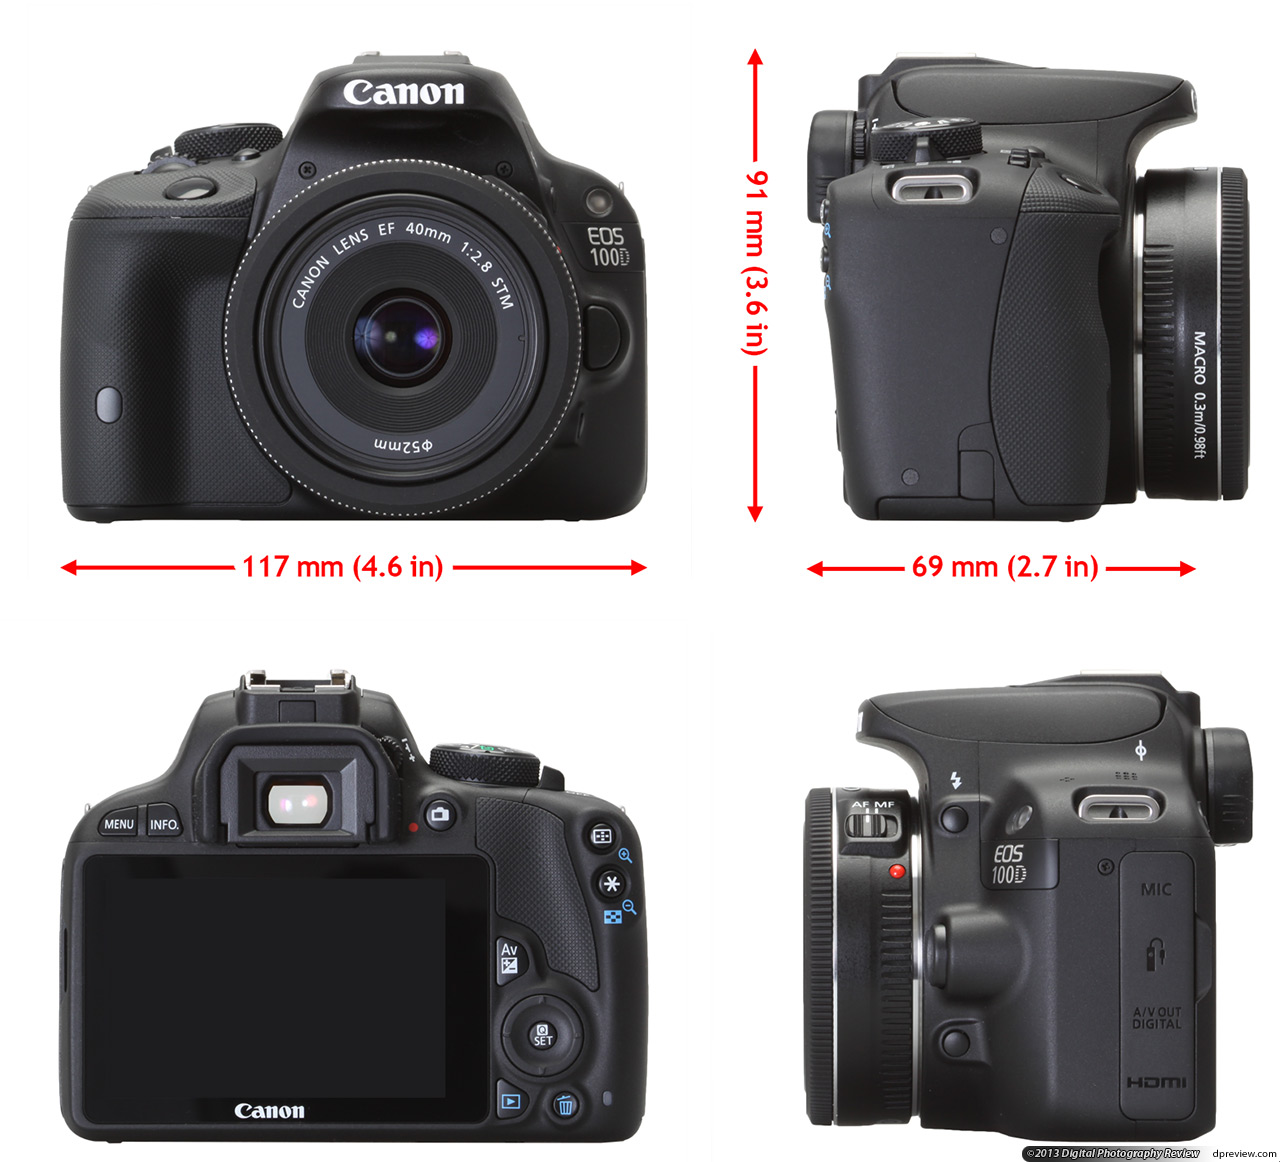 Canon EOS 100D/Rebel SL1 Review: Digital Photography Review